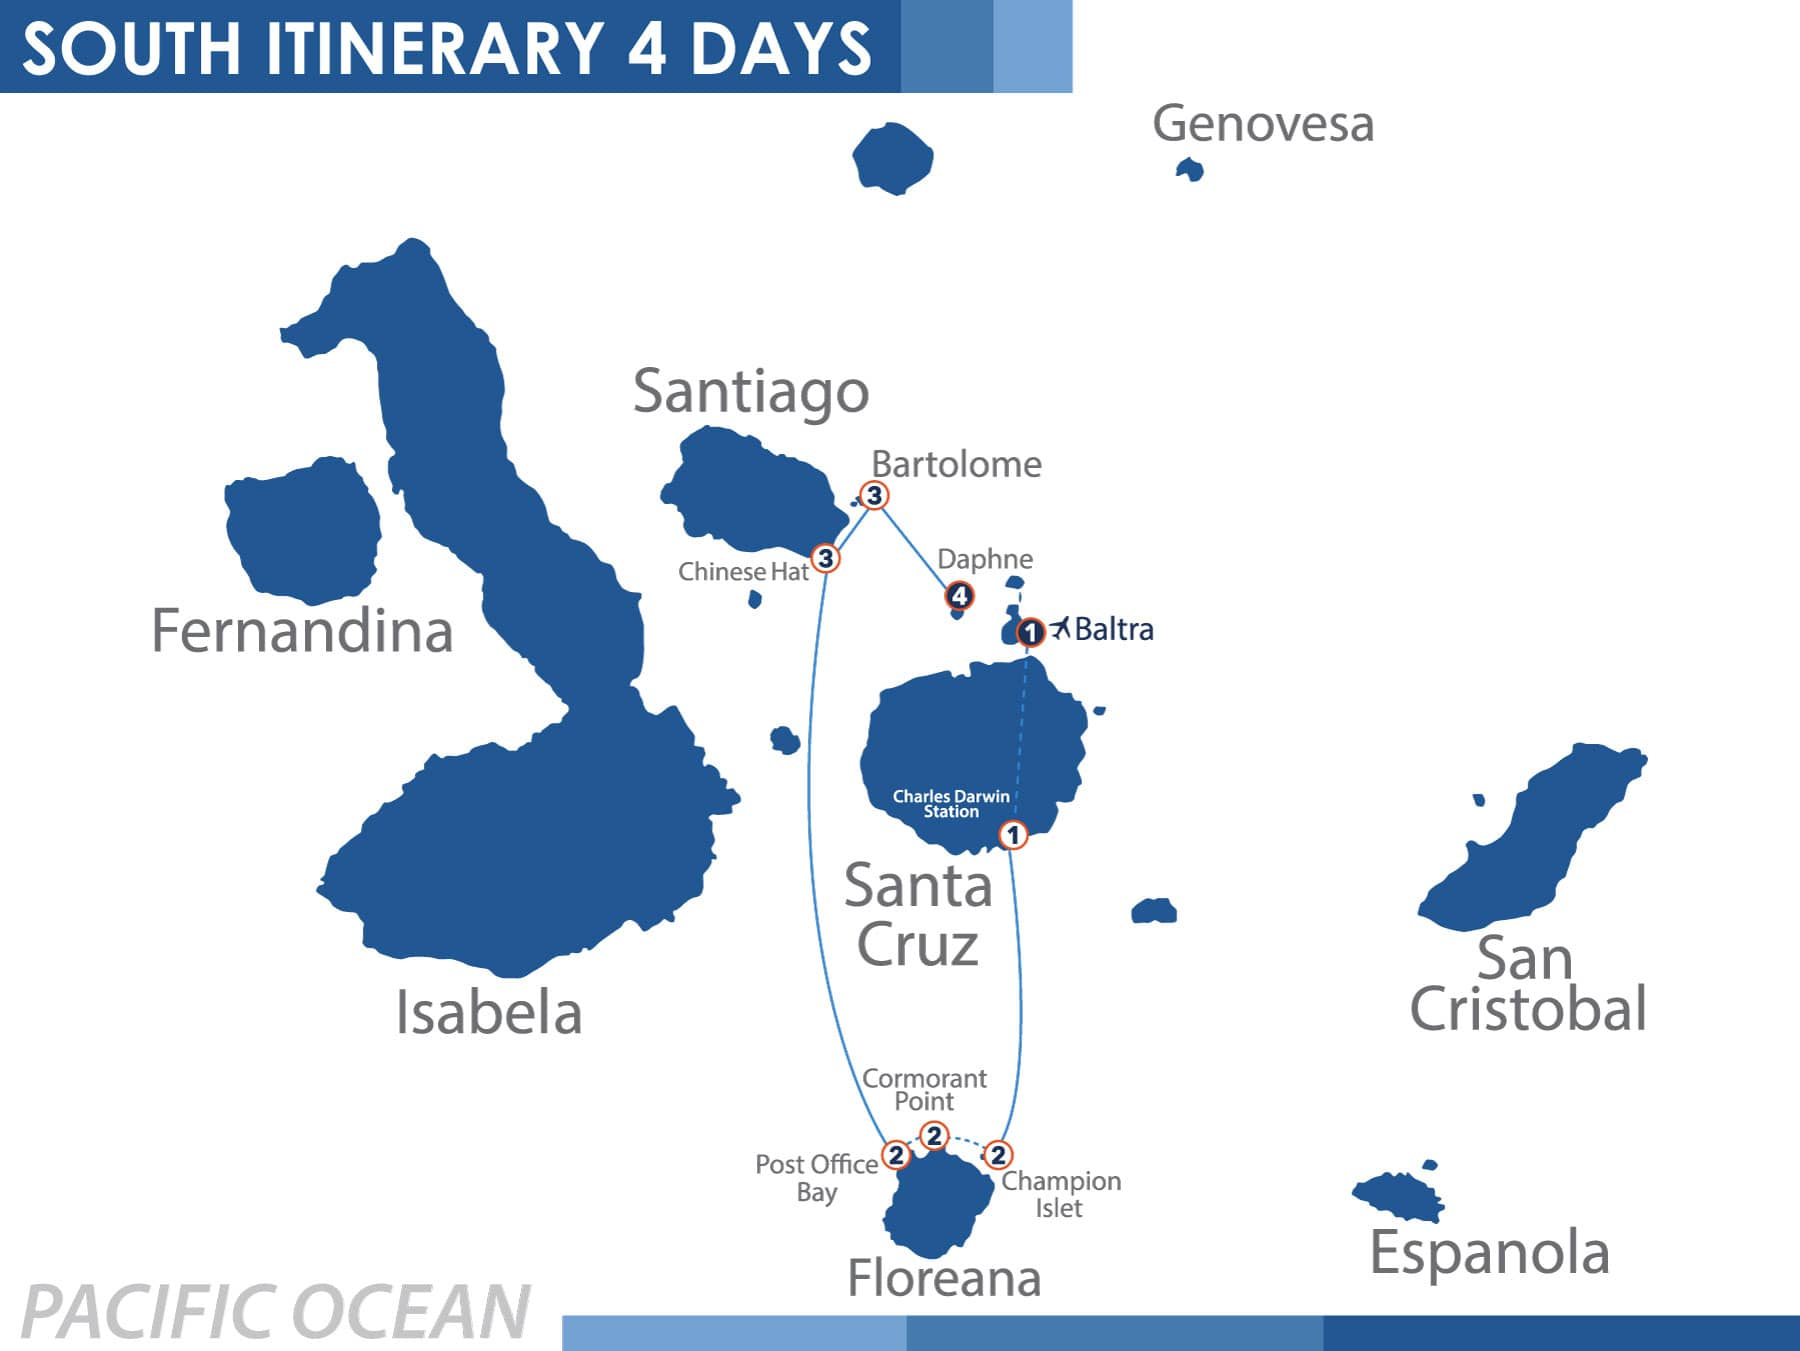 South Itinerary B4 - 4 Days